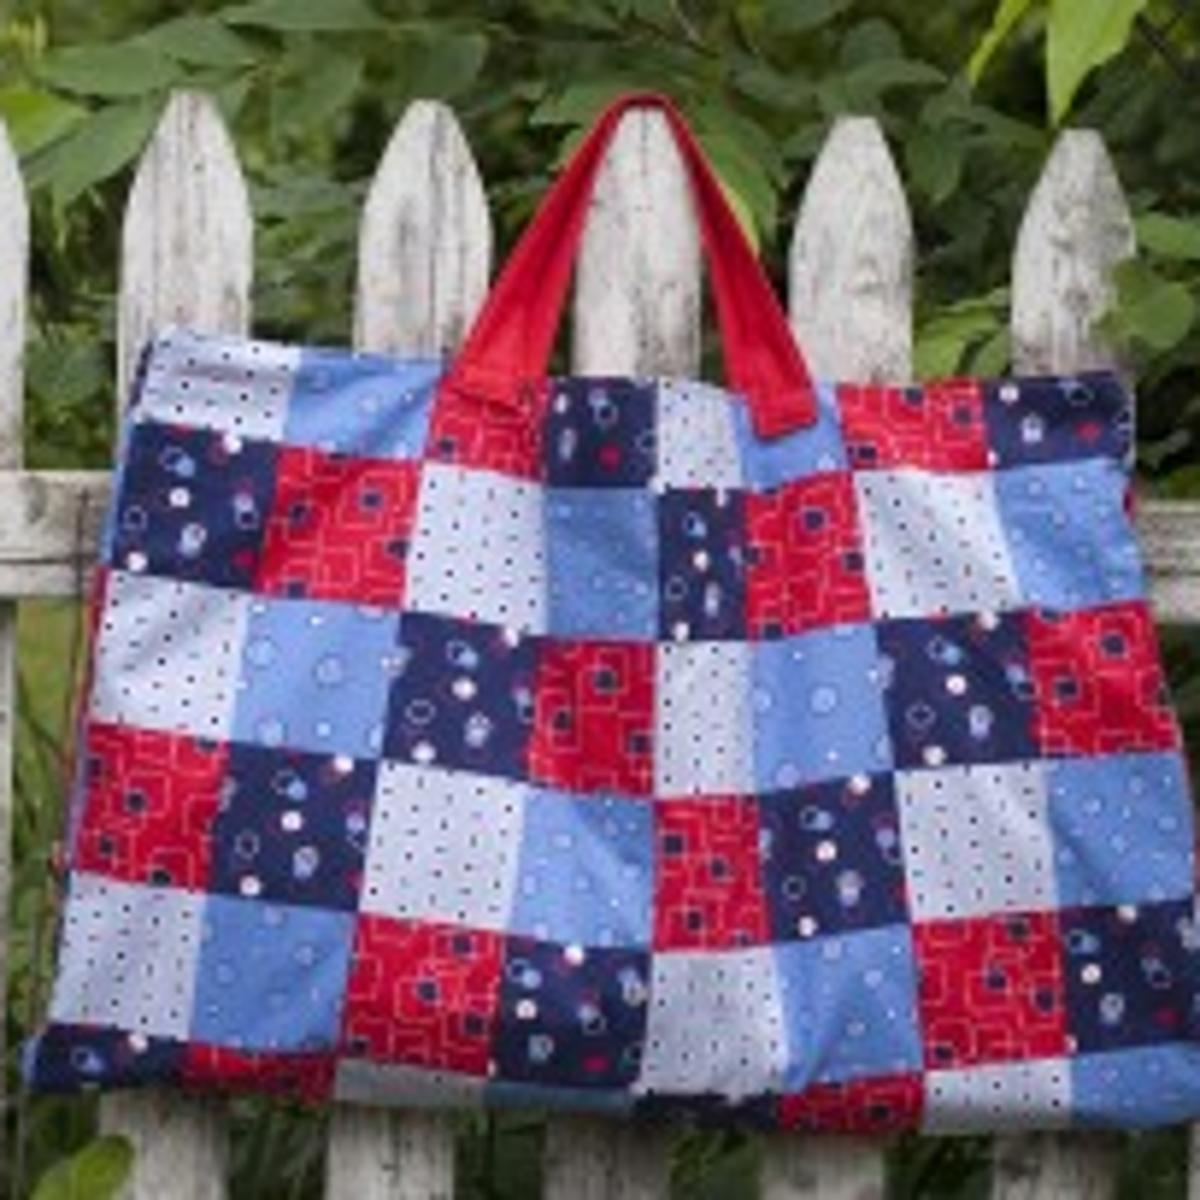 Waterproof Picnic Blanket Folds Into A Tote Home And